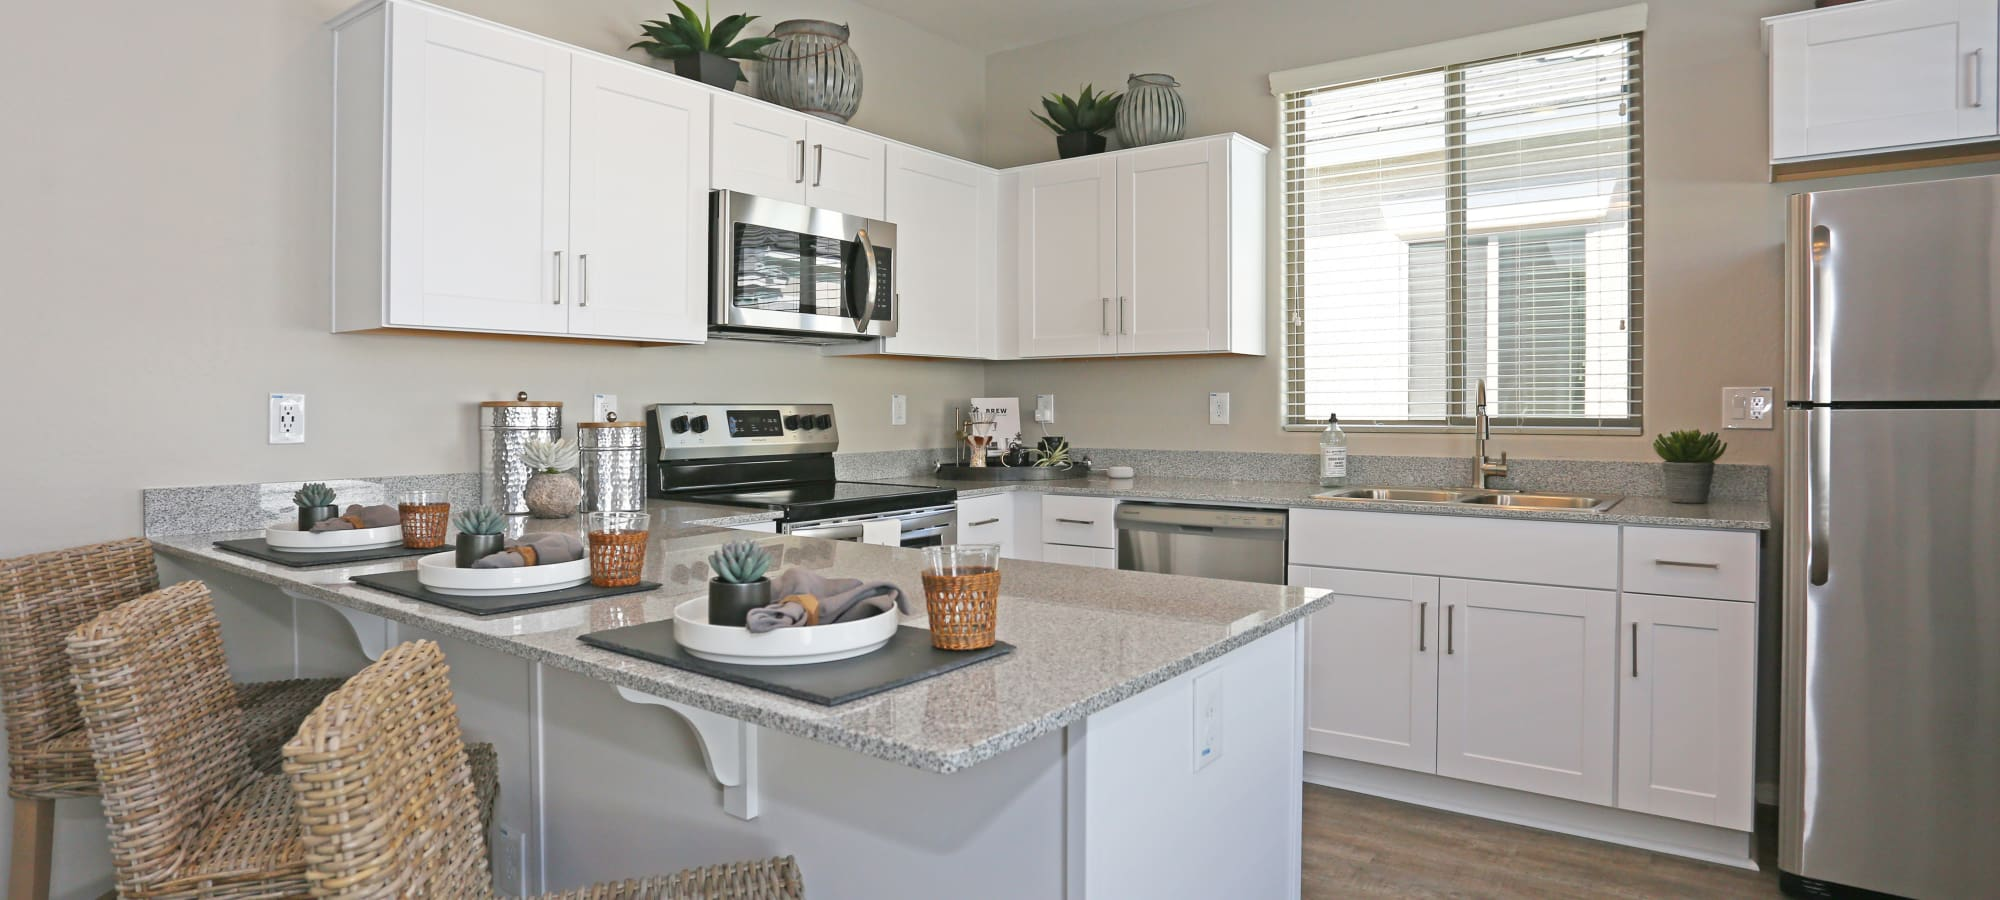 Granite countertops in model home's kitchen at Christopher Todd Communities At Marley Park in Surprise, Arizona